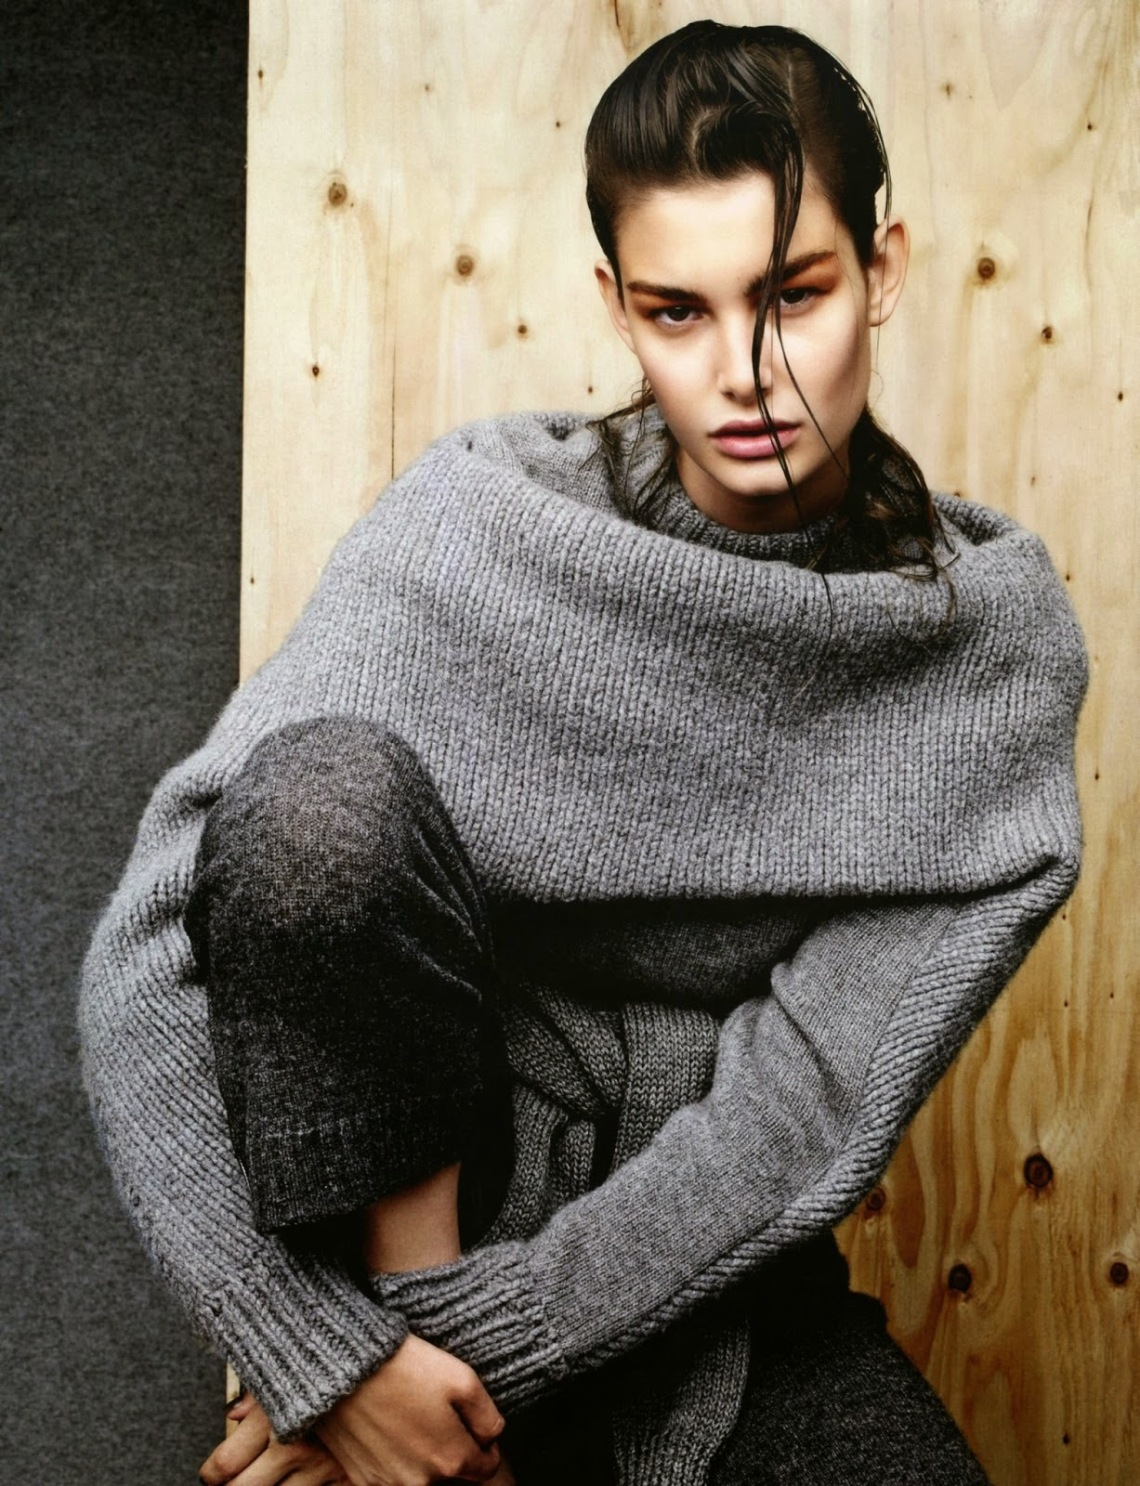 iiiinspired _ women mngmnt blog _ Ophelie Guillermand - Vogue Russia - September 2014 Photography- Jason Kibbler_6